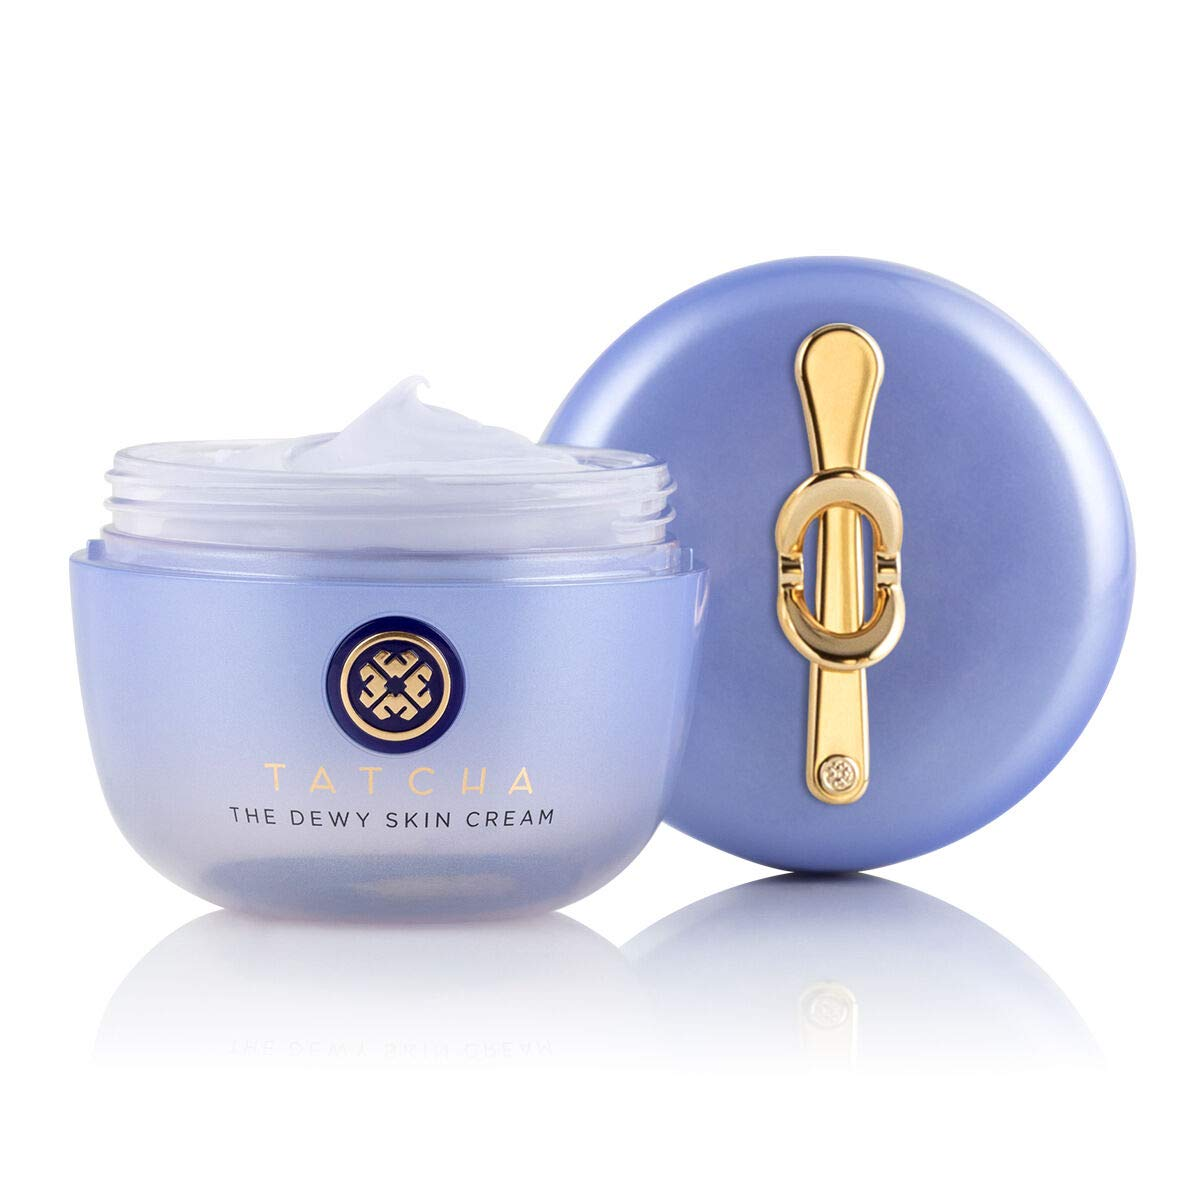 Image result for Tatcha The Dewy Skin Cream